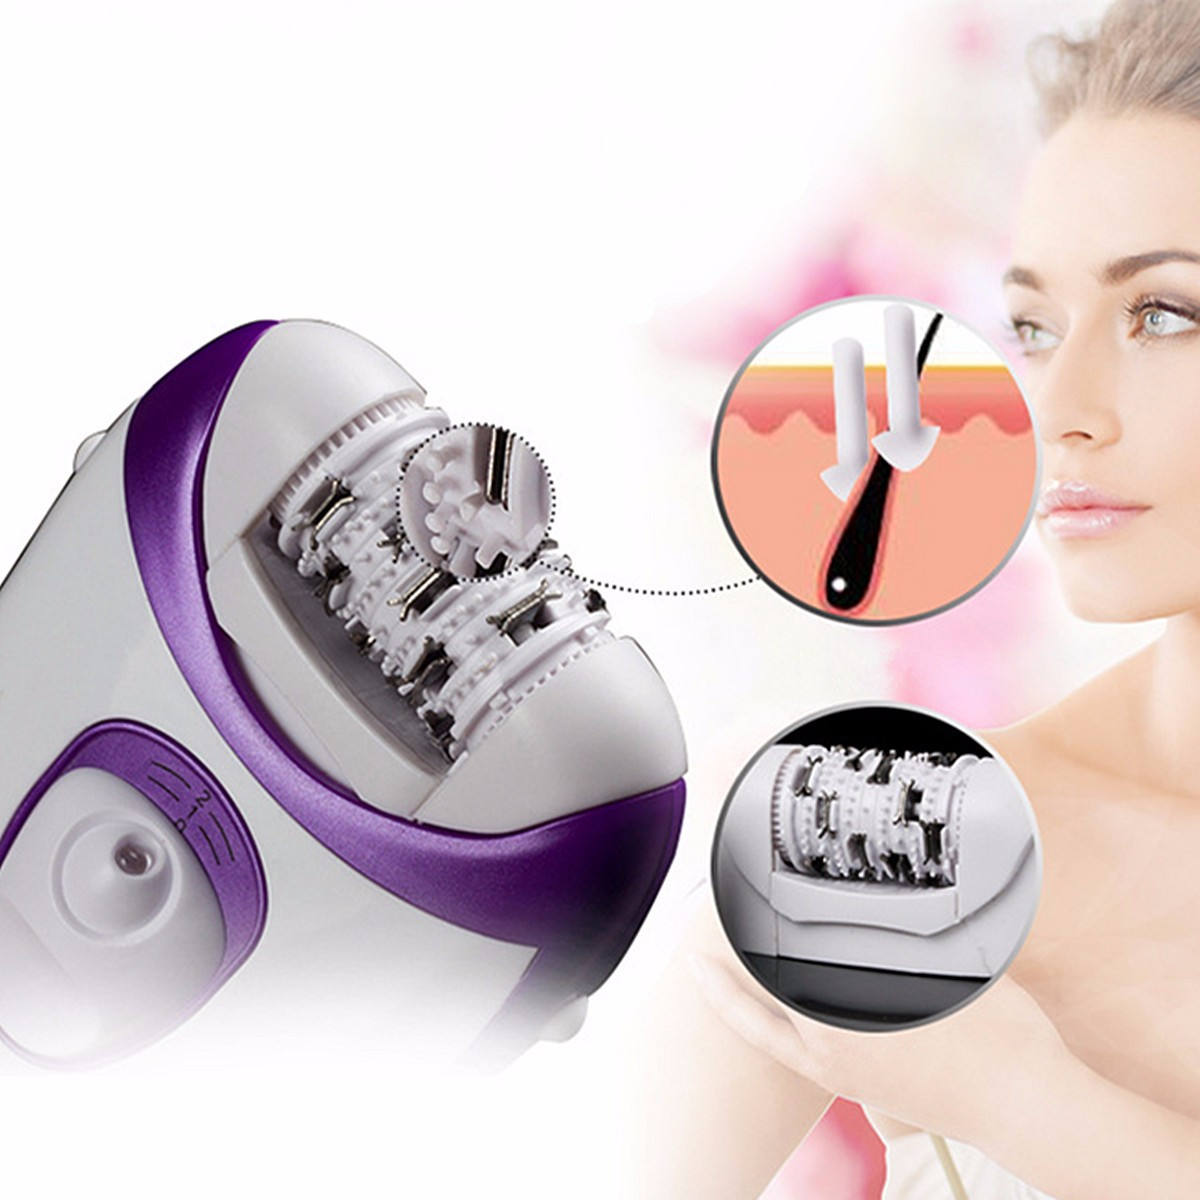 Rechargeable 4 In 1 Electric Callus Remover Epilator Tweezer Hair Removal Shaver Electric Lady Rechargeable Quick EU Plug Light